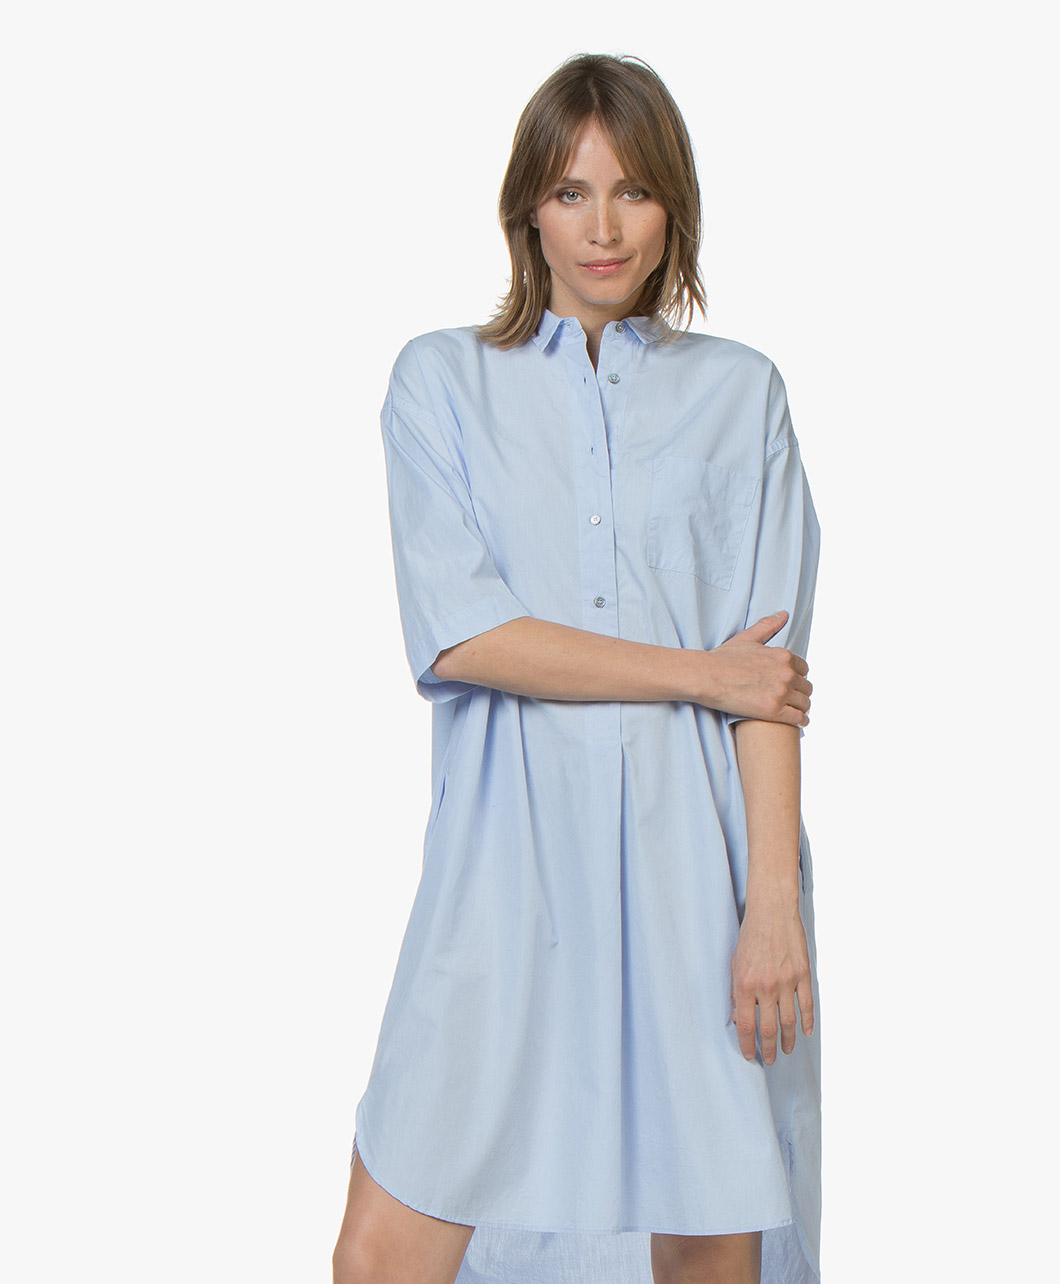 Pomandre Cotton Poplin Shirt Dress Light Blue 191 926310501 82